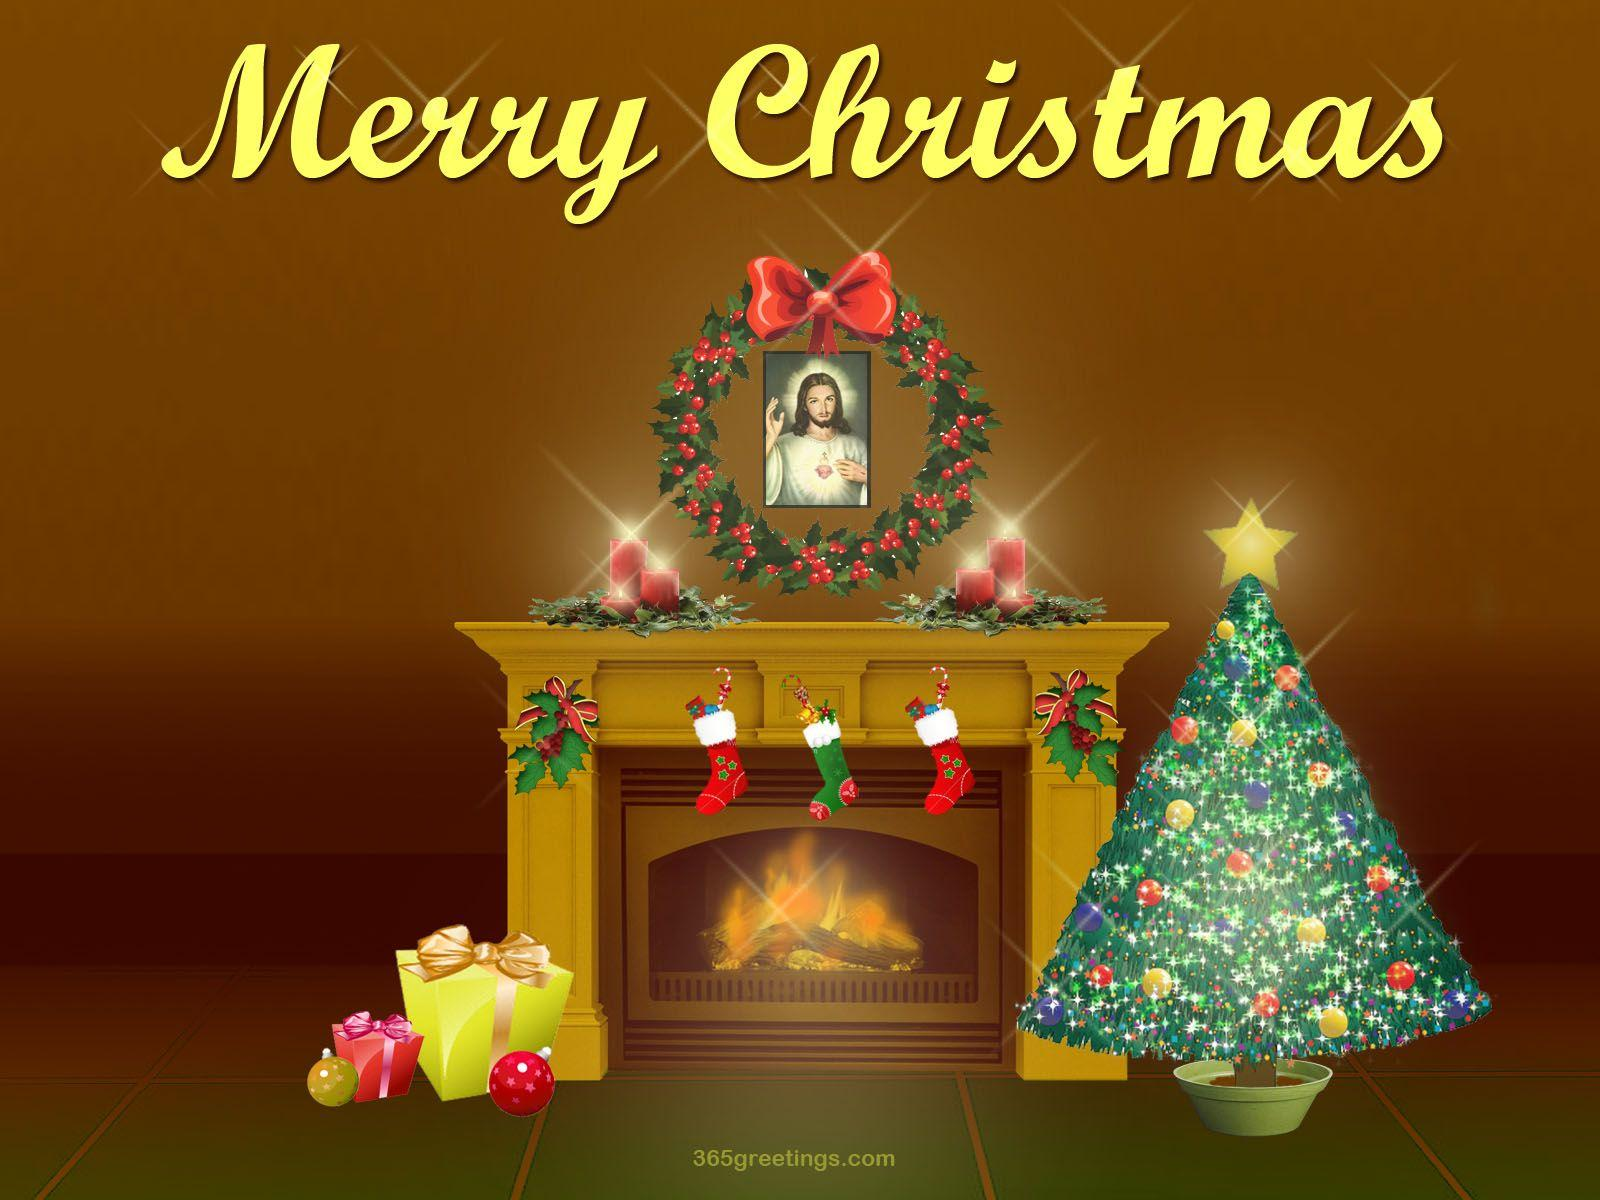 Merry Christmas Jesus Images Hd.Baby Jesus Christmas Wallpapers Wallpaper Cave